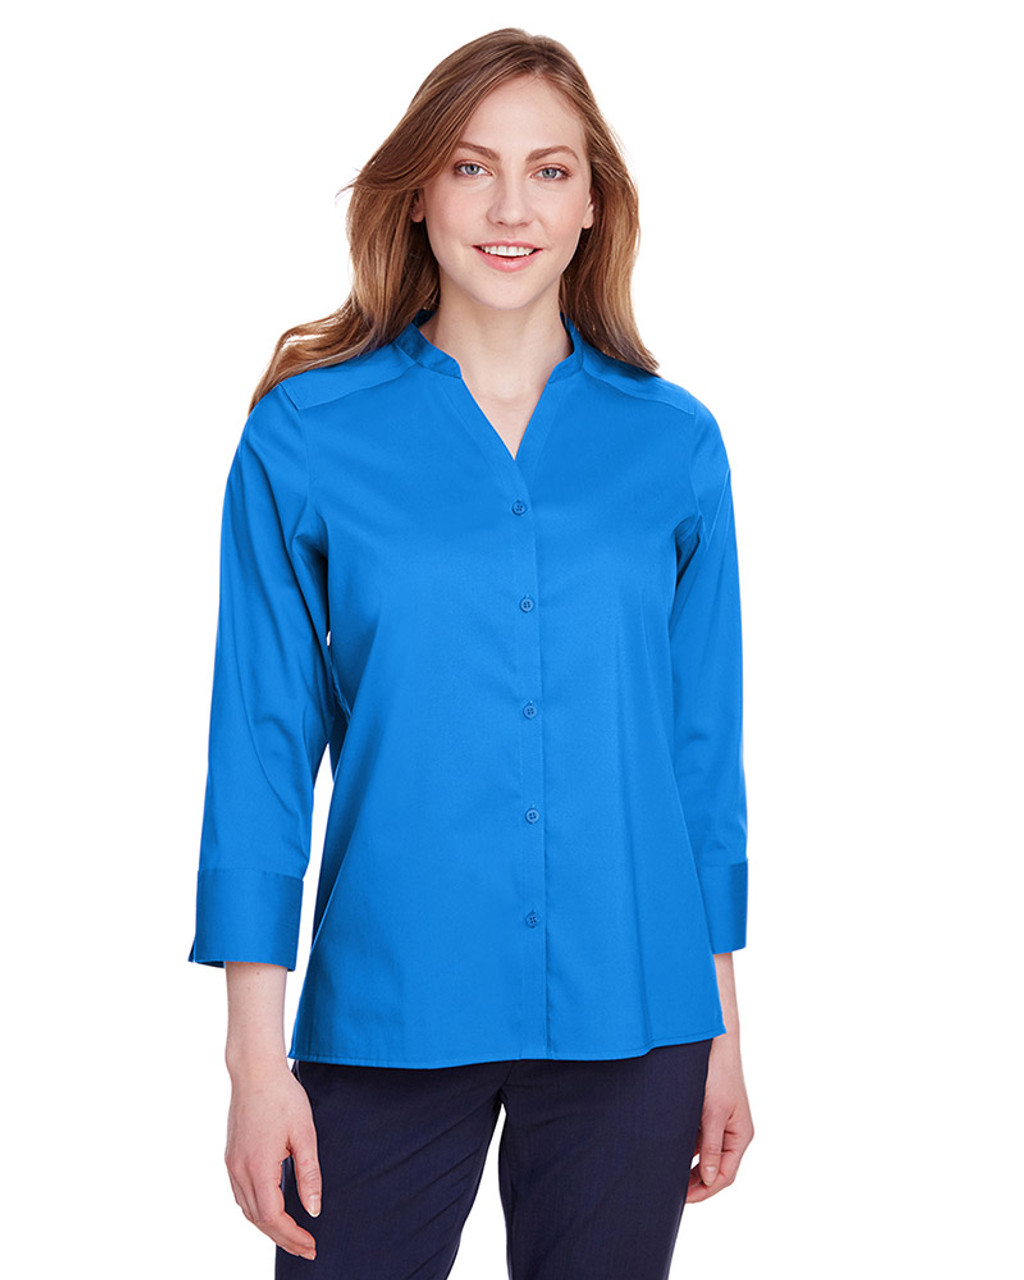 French Blue - back, DG560W Devon & Jones Ladies' Crown Collection™ Stretch Broadcloth 3/4 Sleeve Blouse | Blankclothing.ca